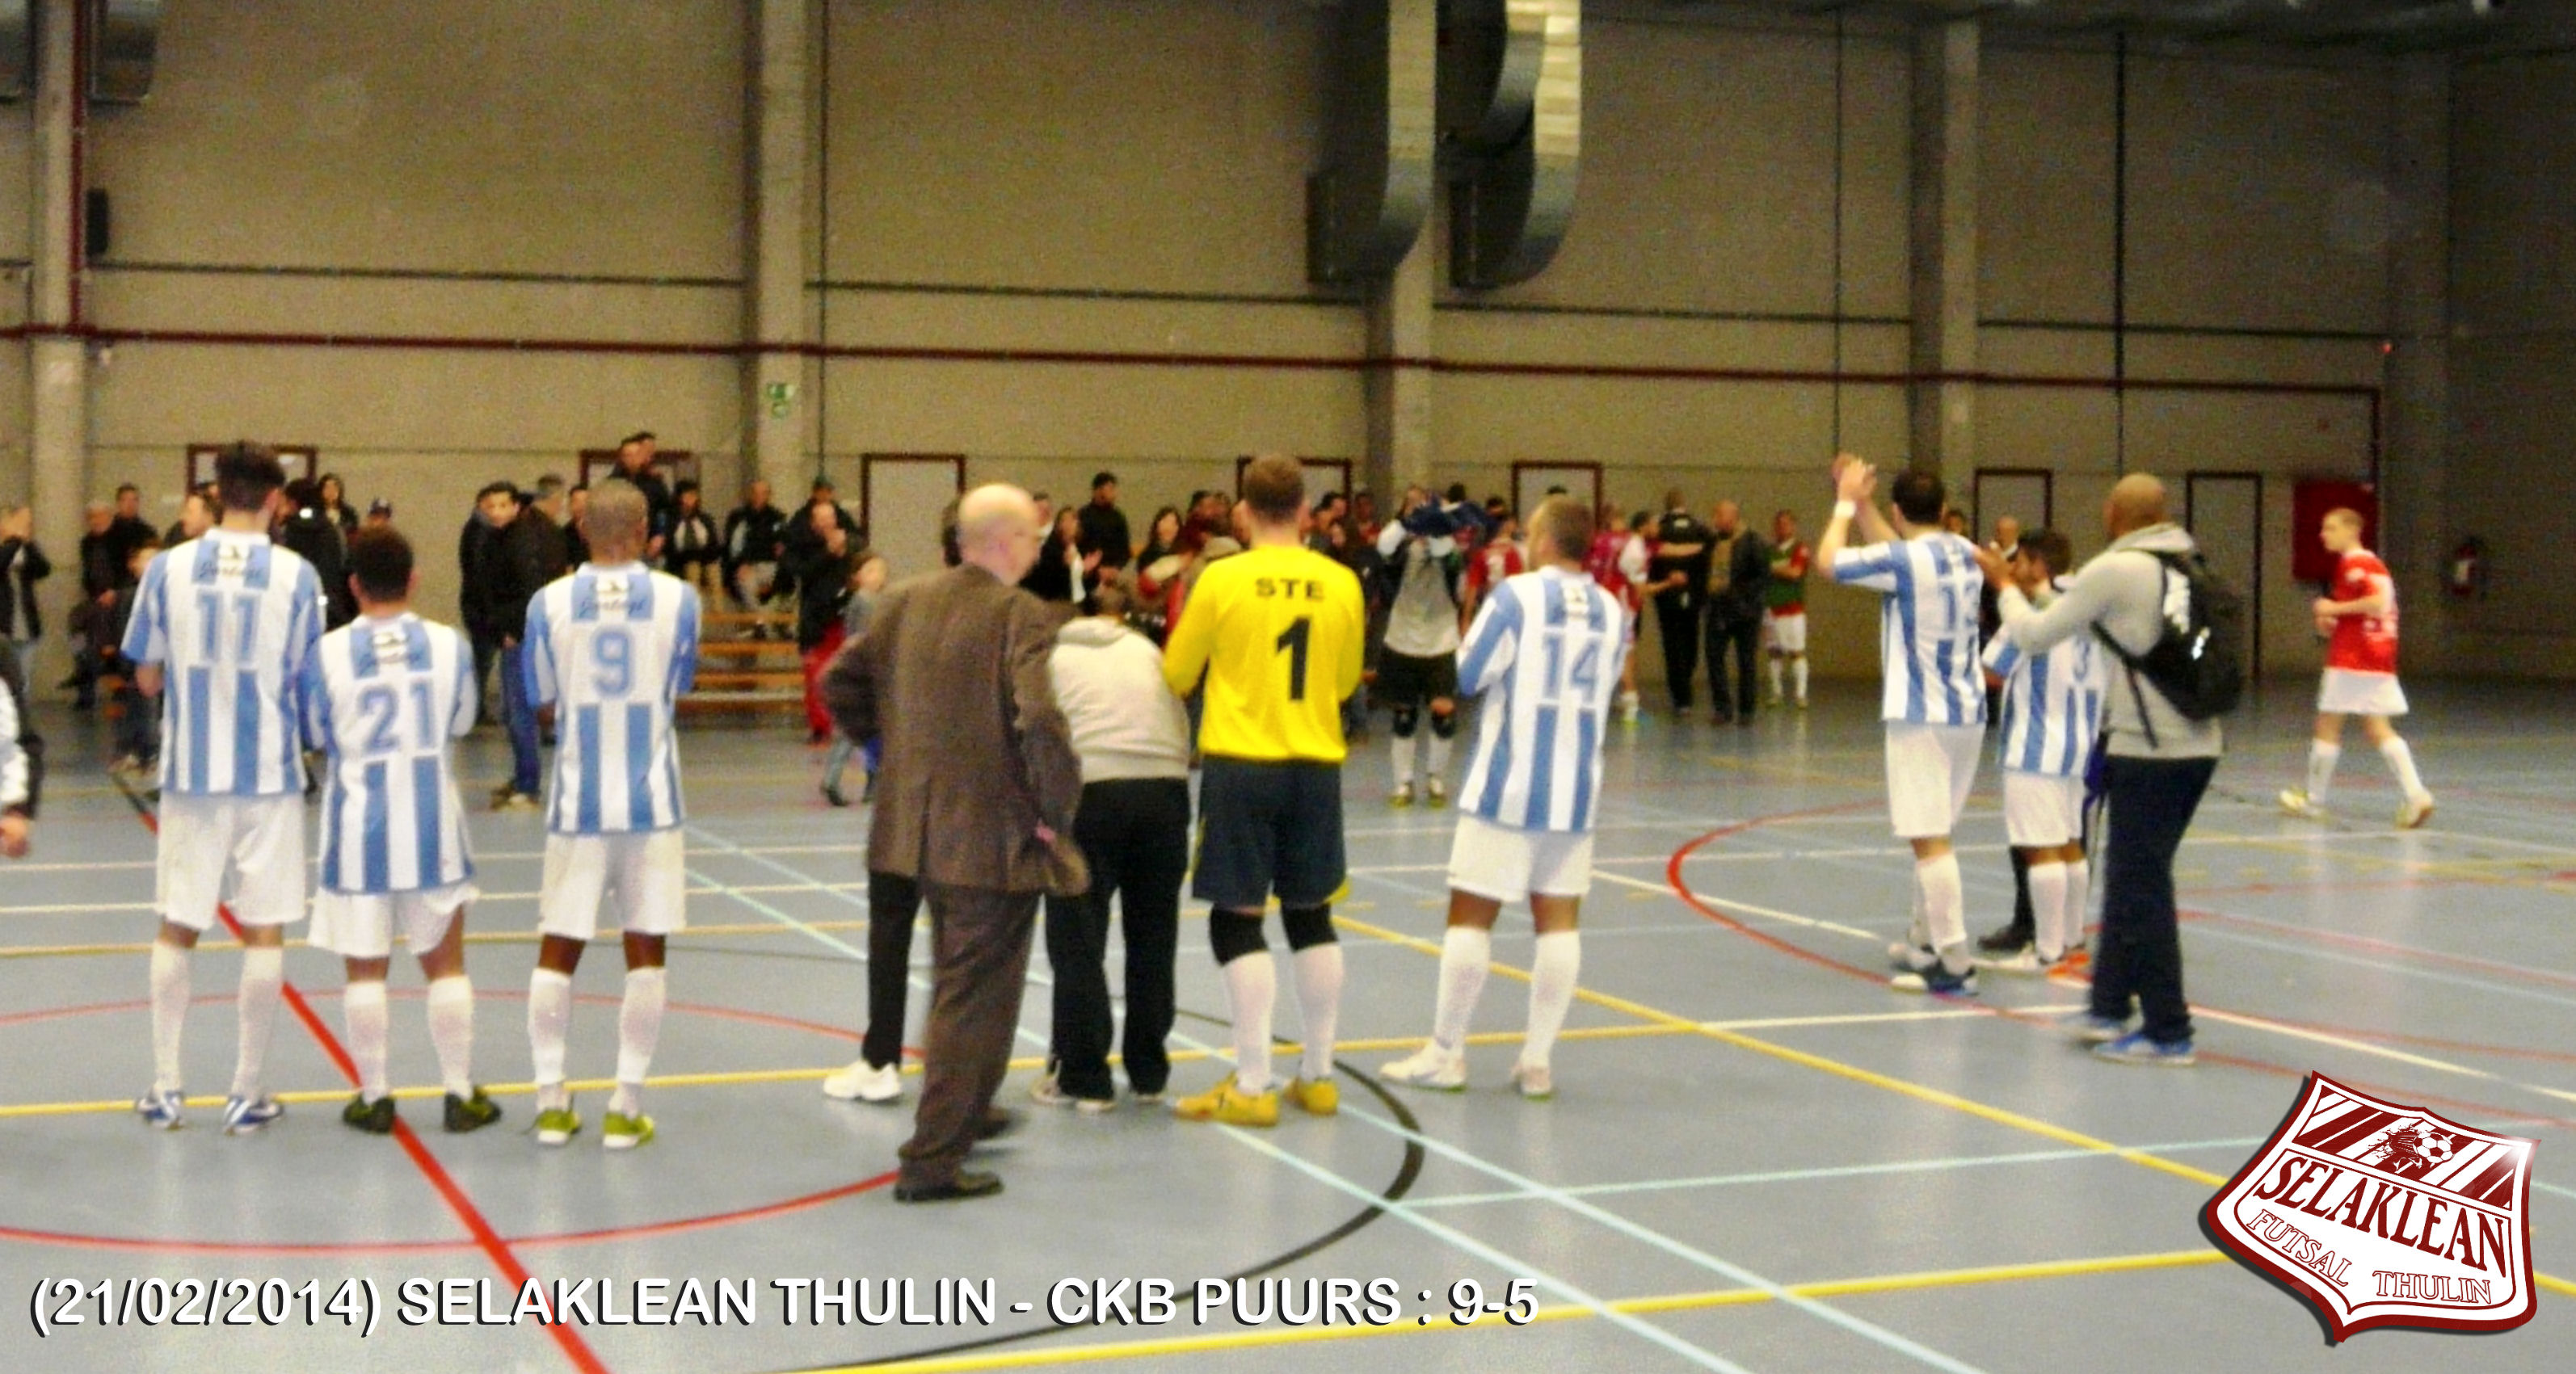 2014-02-21-thulin-puurs